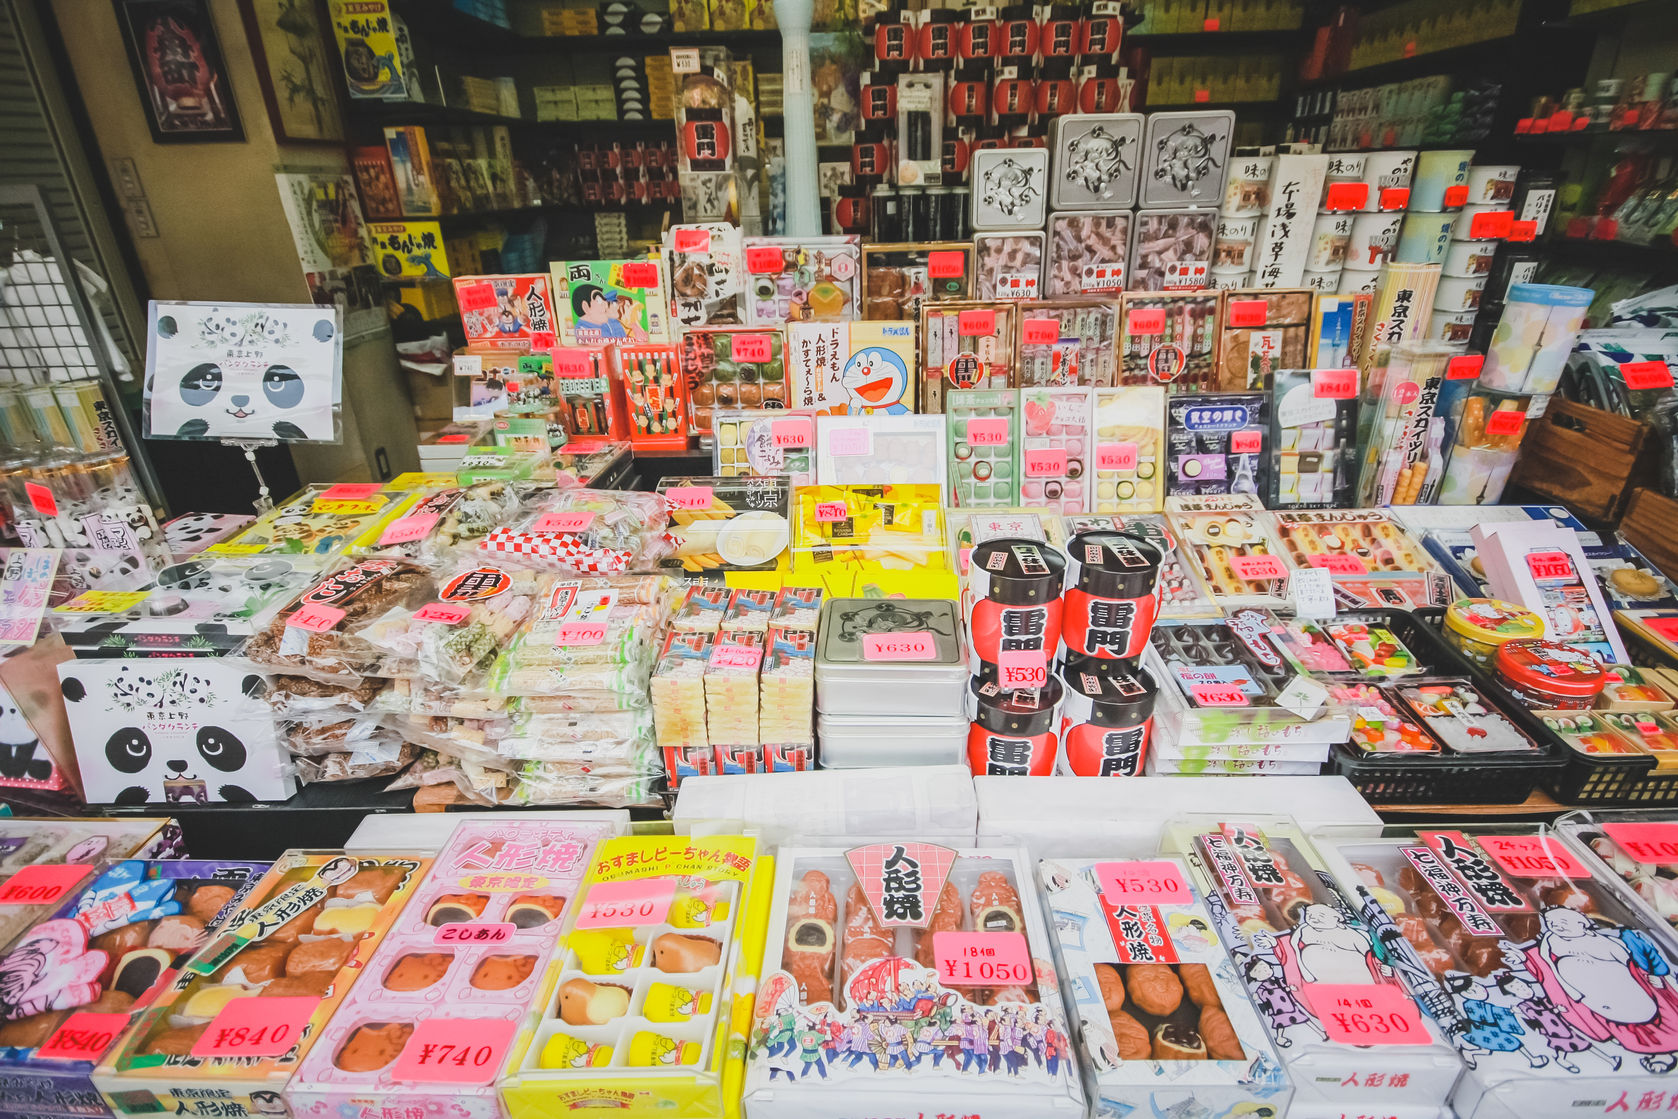 5 Tips when Buying 'Omiyage' Souvenirs for your Coworkers in